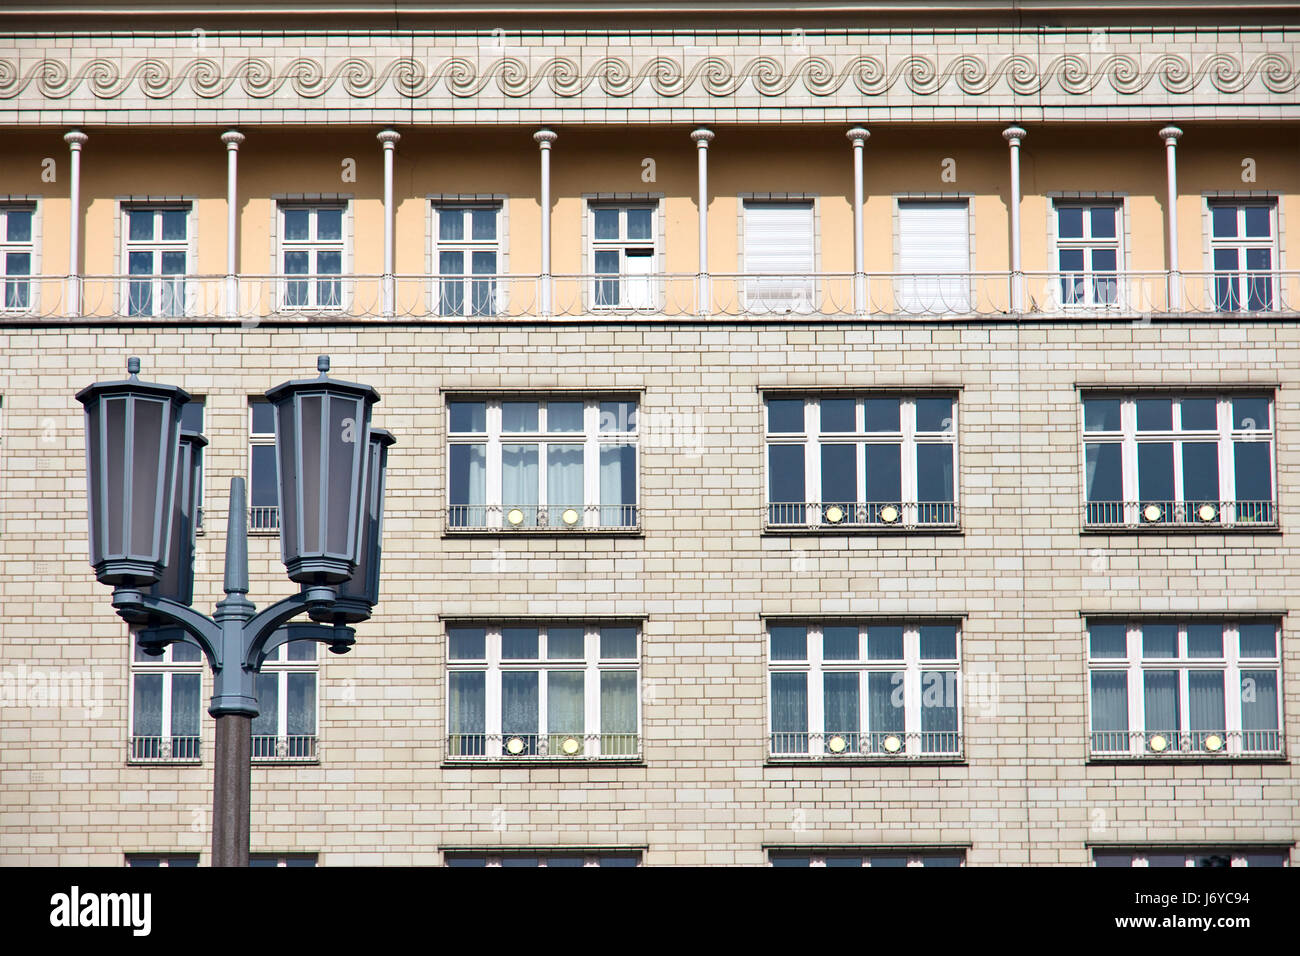 window porthole dormer window pane berlin facade lantern shiner light lamp - Stock Image